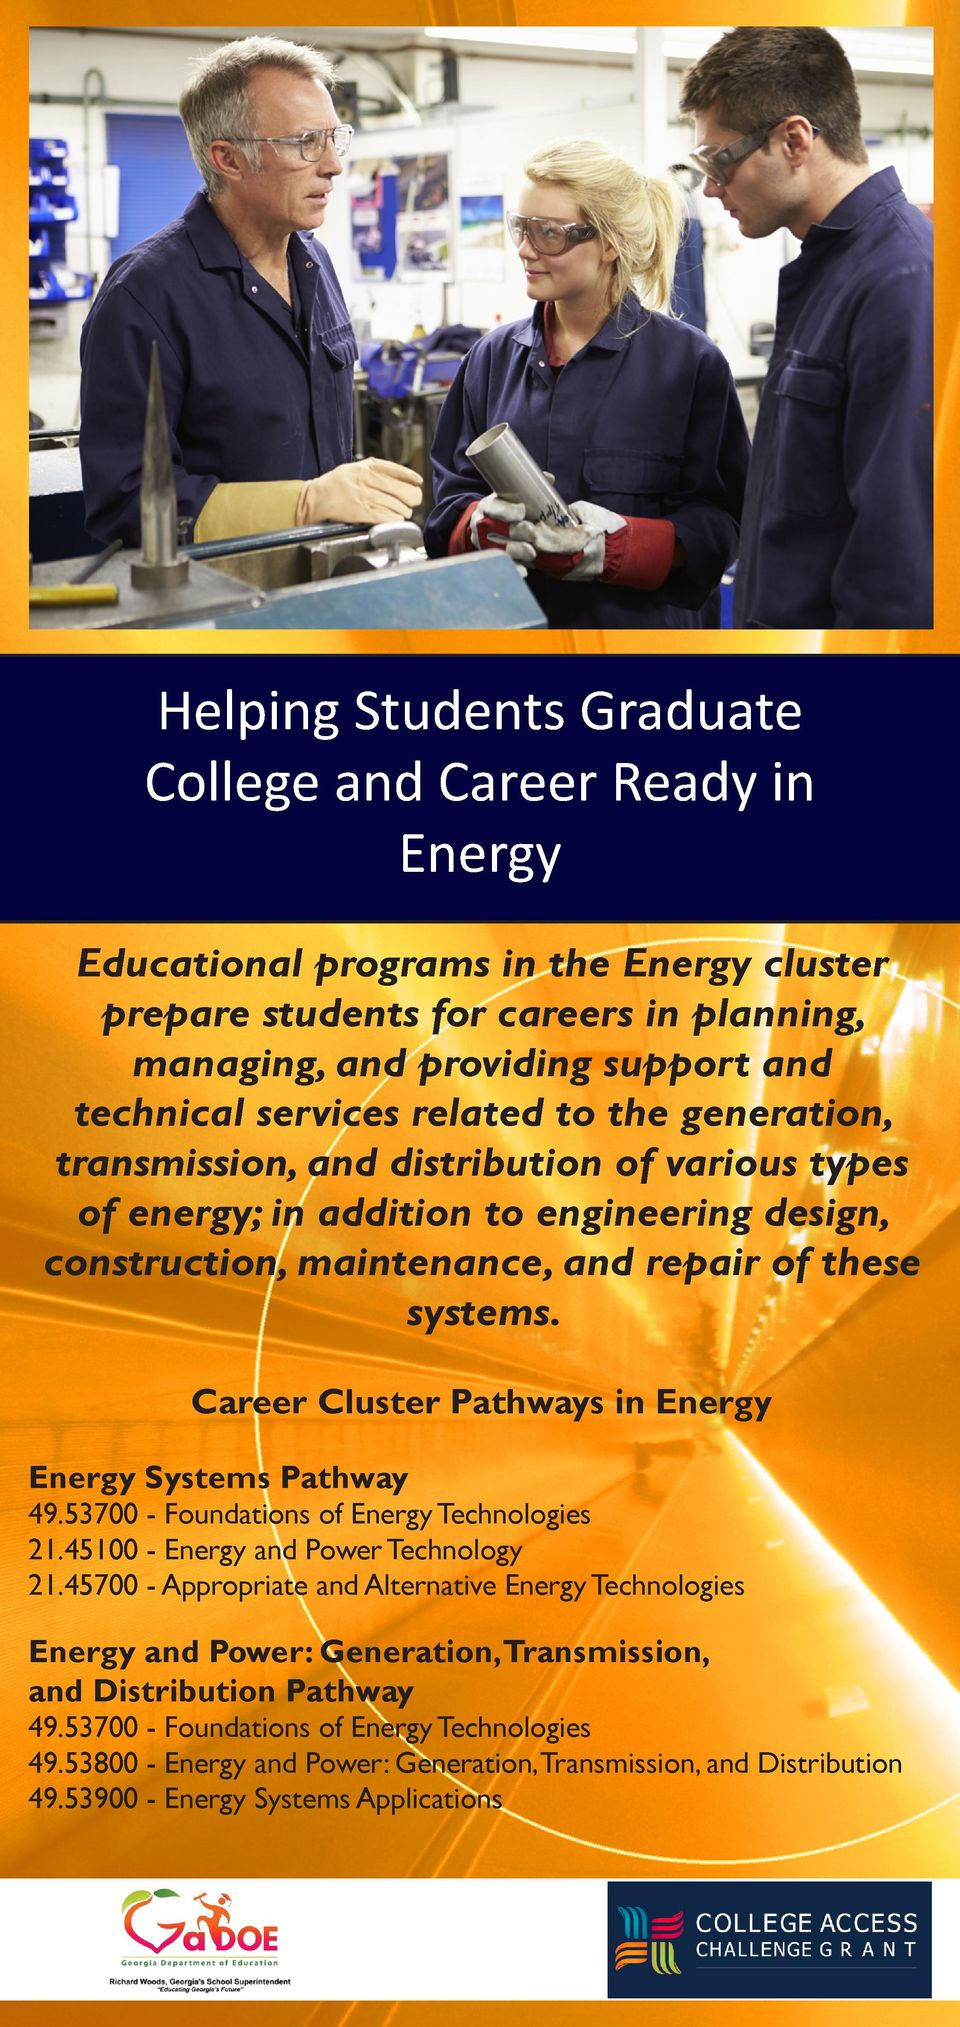 Career Cluster Pathways in Energy Energy Systems Pathway 49.53700 - Foundations of Energy Technologies 21.45100 - Energy and Power Technology 21.